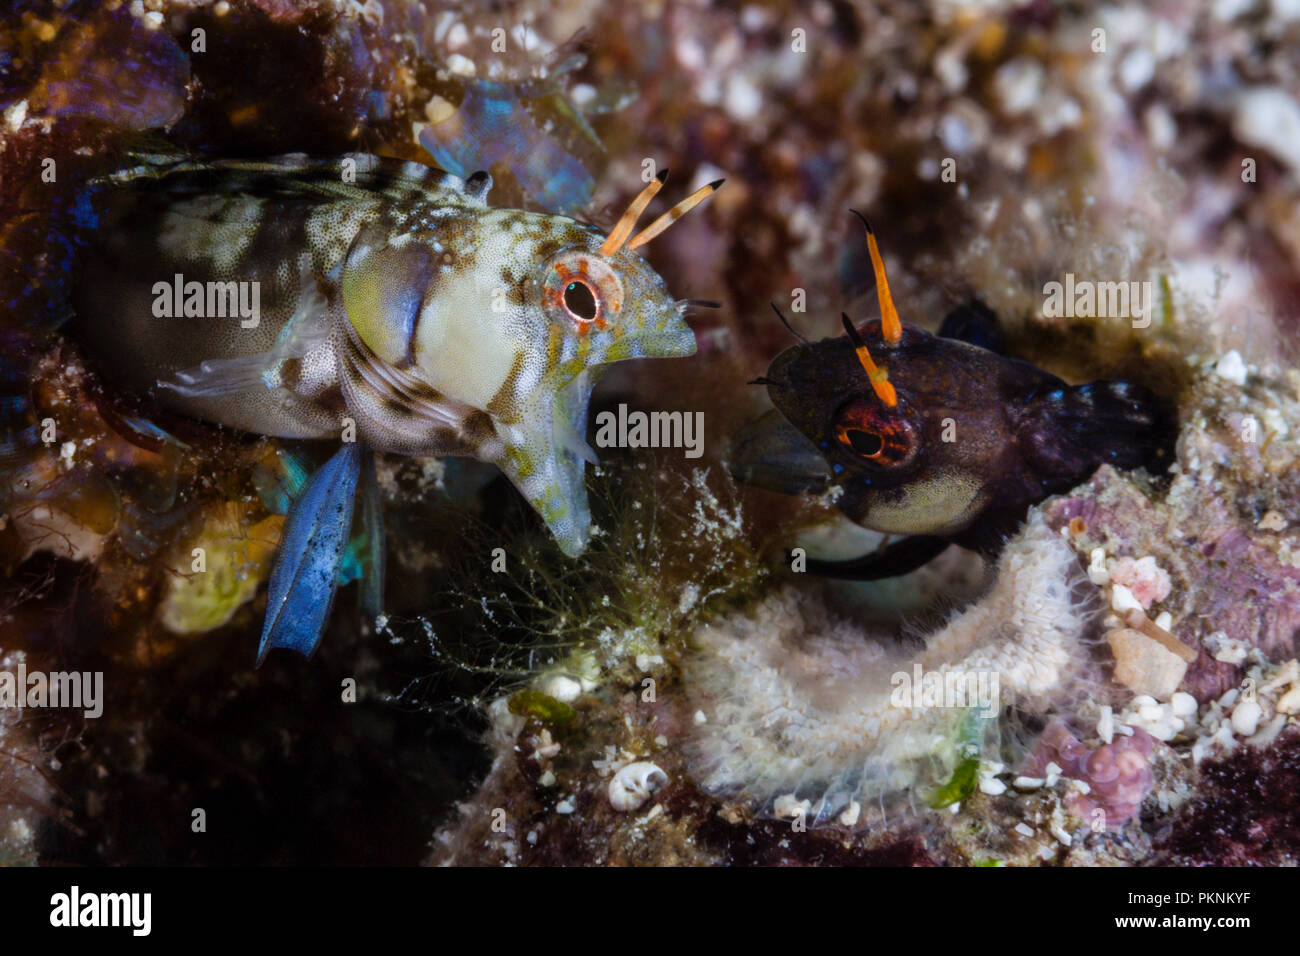 Signal Blenny in threatening posture, Emblemaria walkeri, La Paz, Baja California Sur, Mexico - Stock Image